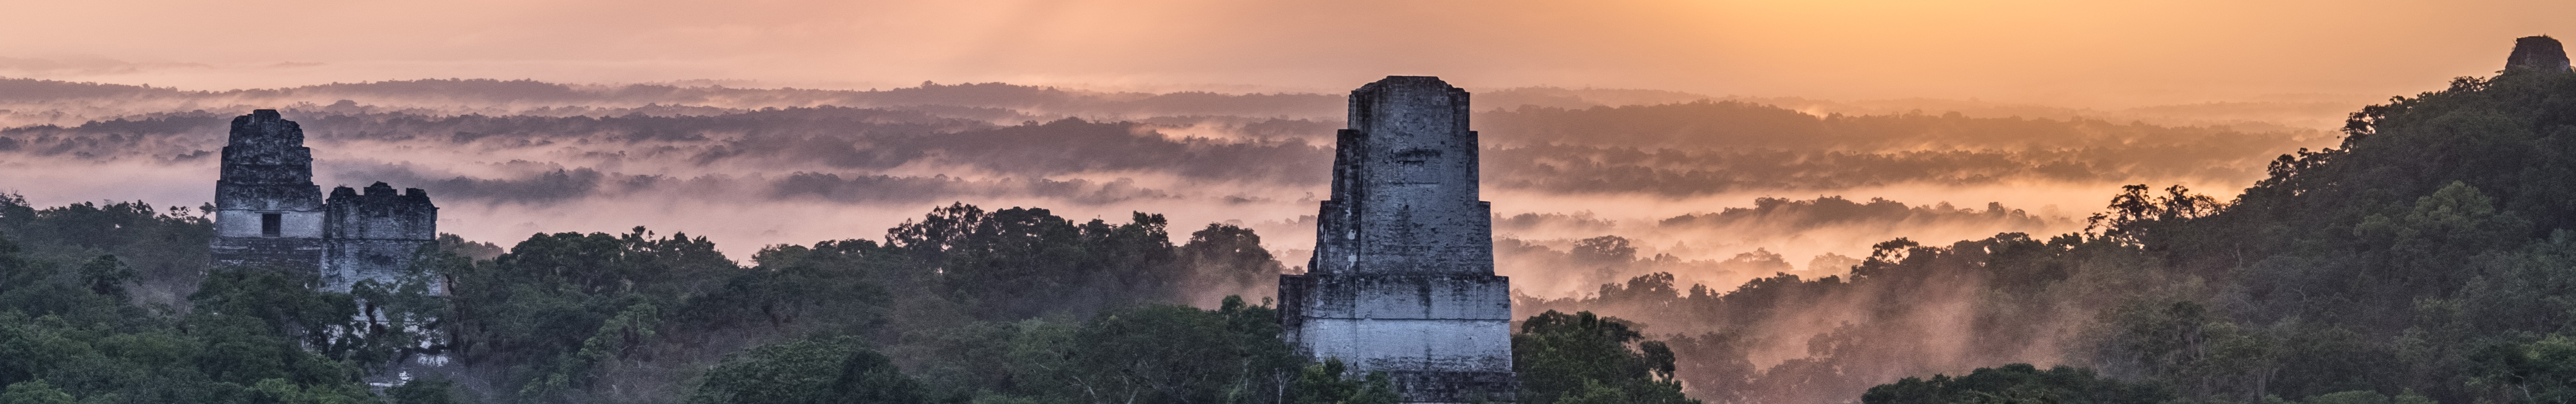 Guatemala landscape with temples, banner